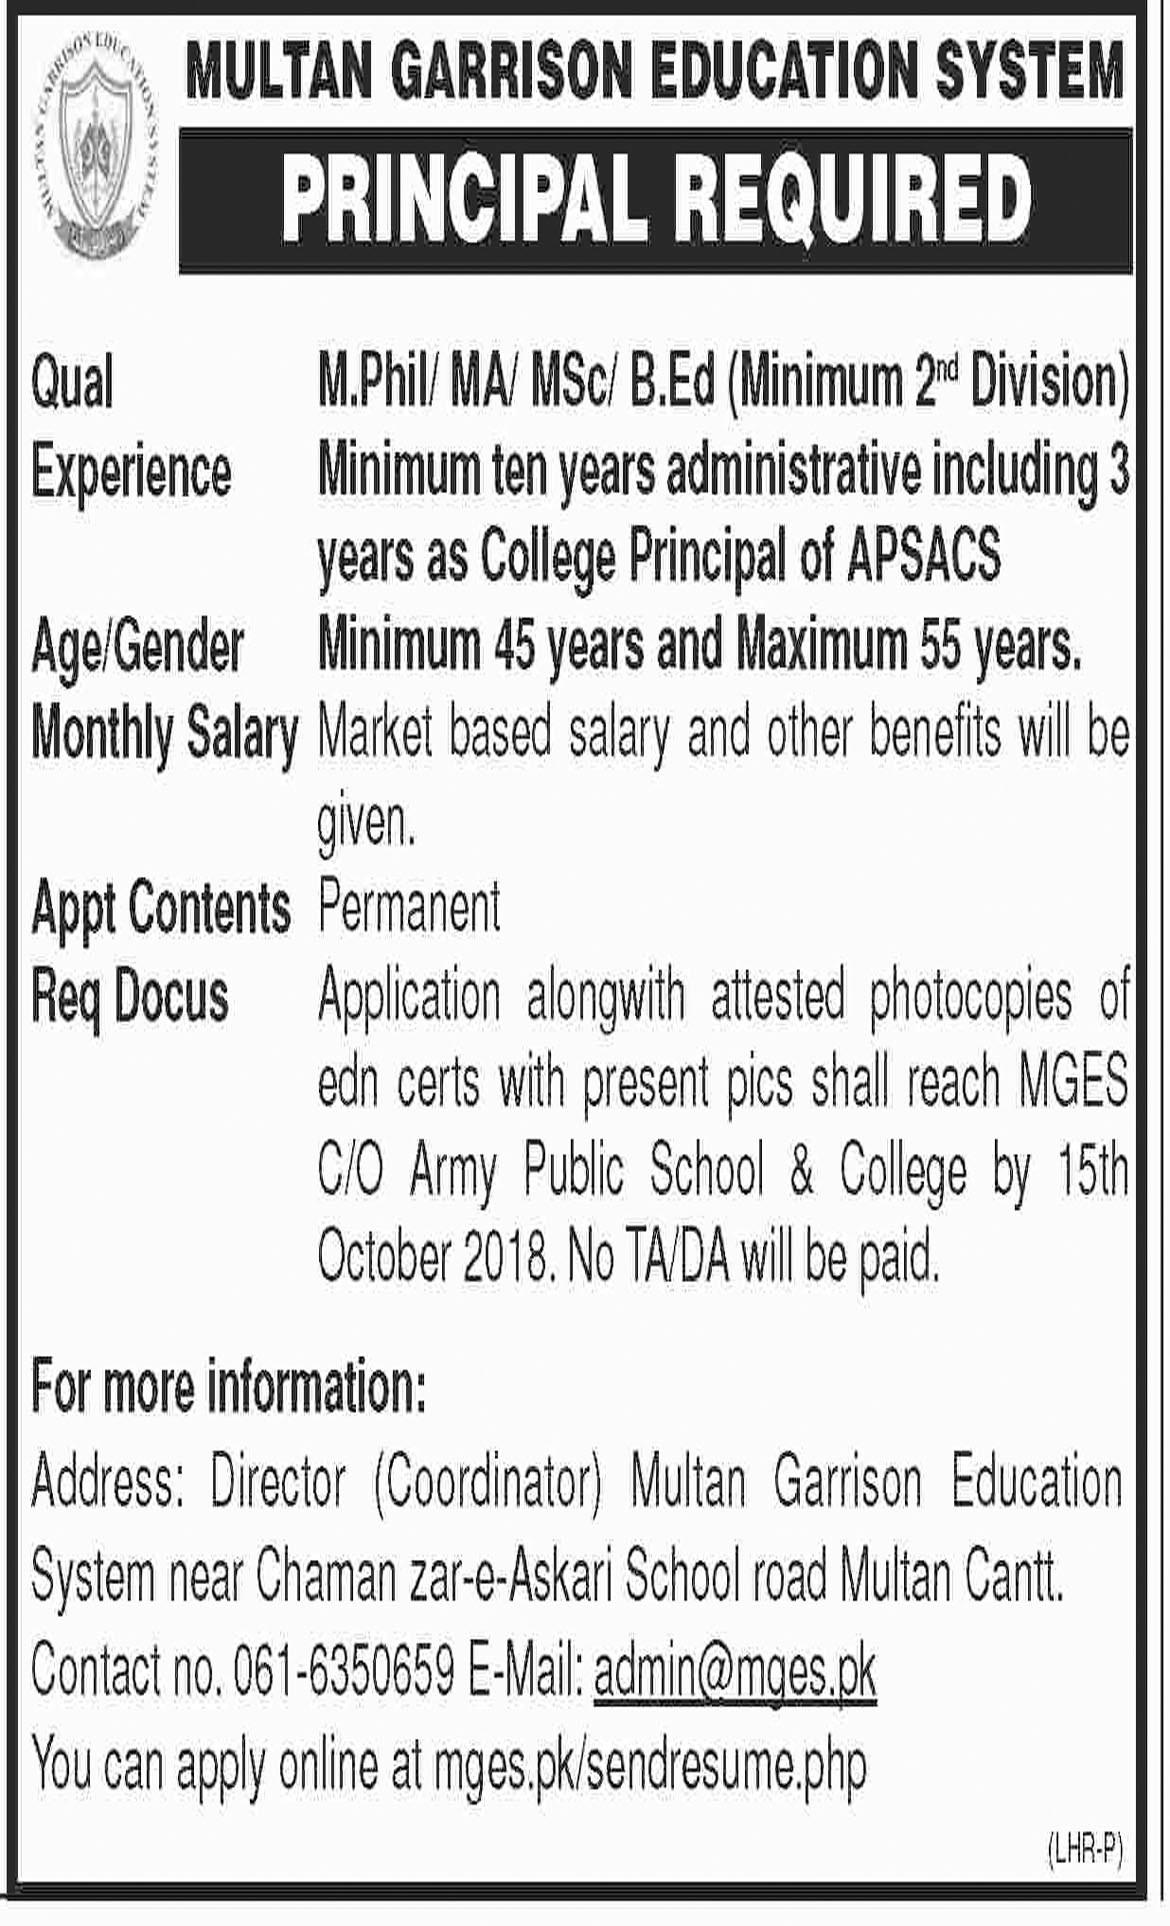 Jobs In Multan Garrison Education System 11 Oct 2018